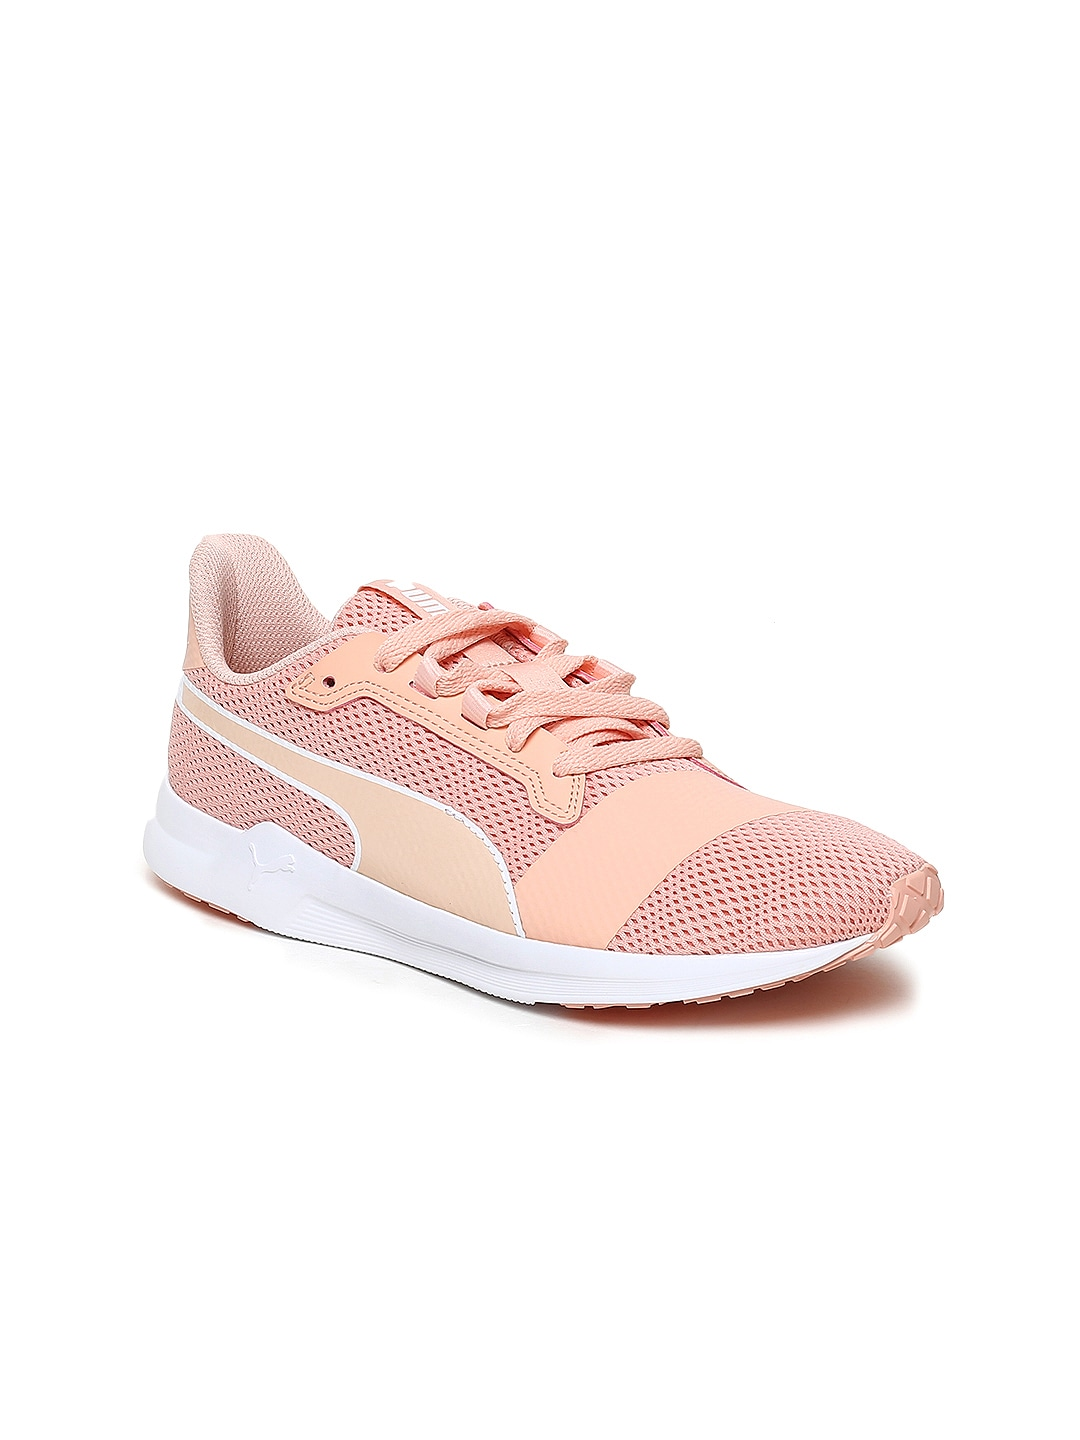 af6c110f85b0 Puma Women Shoes - Buy Puma Women Shoes online in India